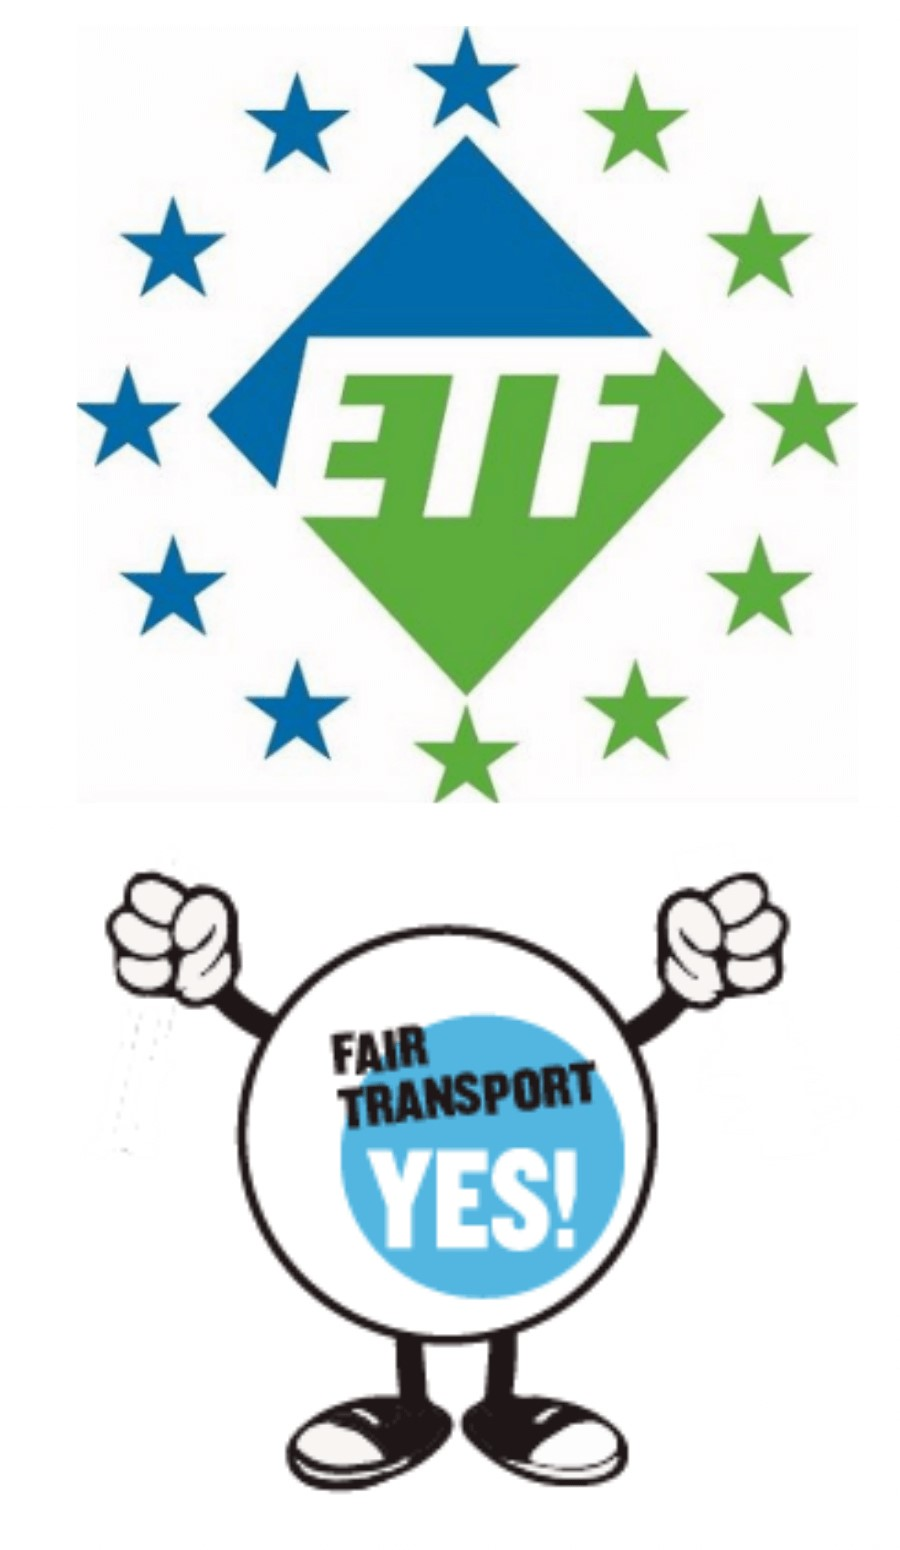 Aviation workers: Join the ETF's Fair Transport Demonstration on 27 March!